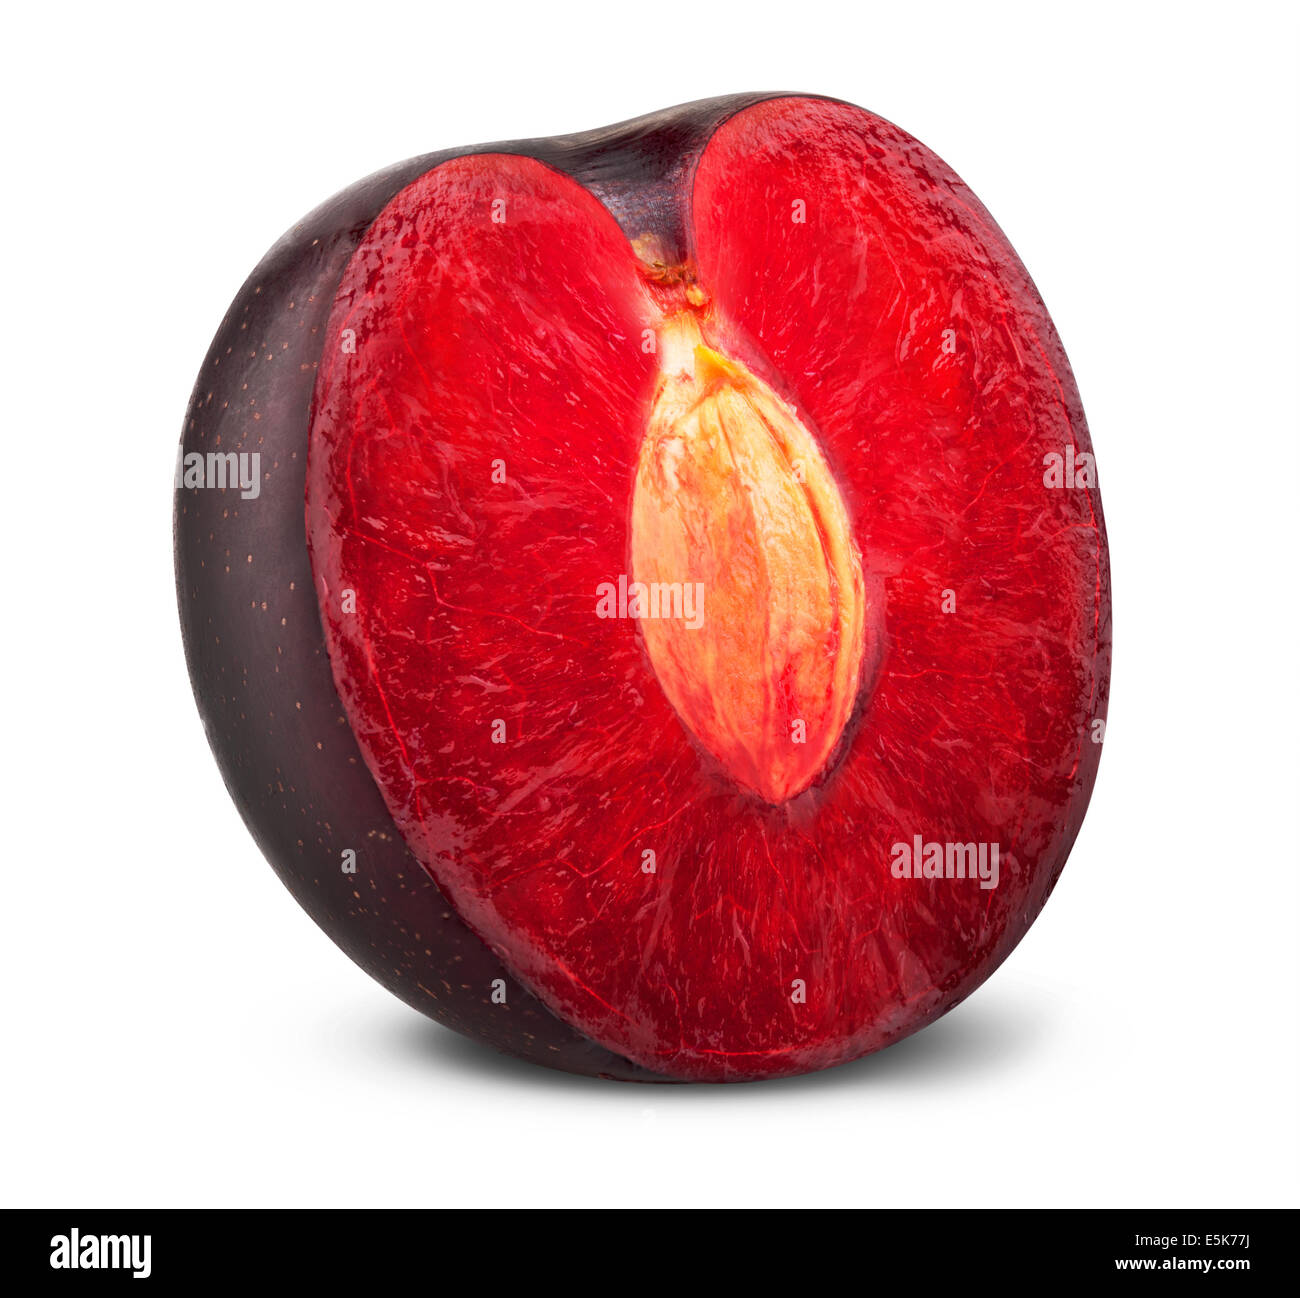 plum isolated on white background. Clipping Path - Stock Image